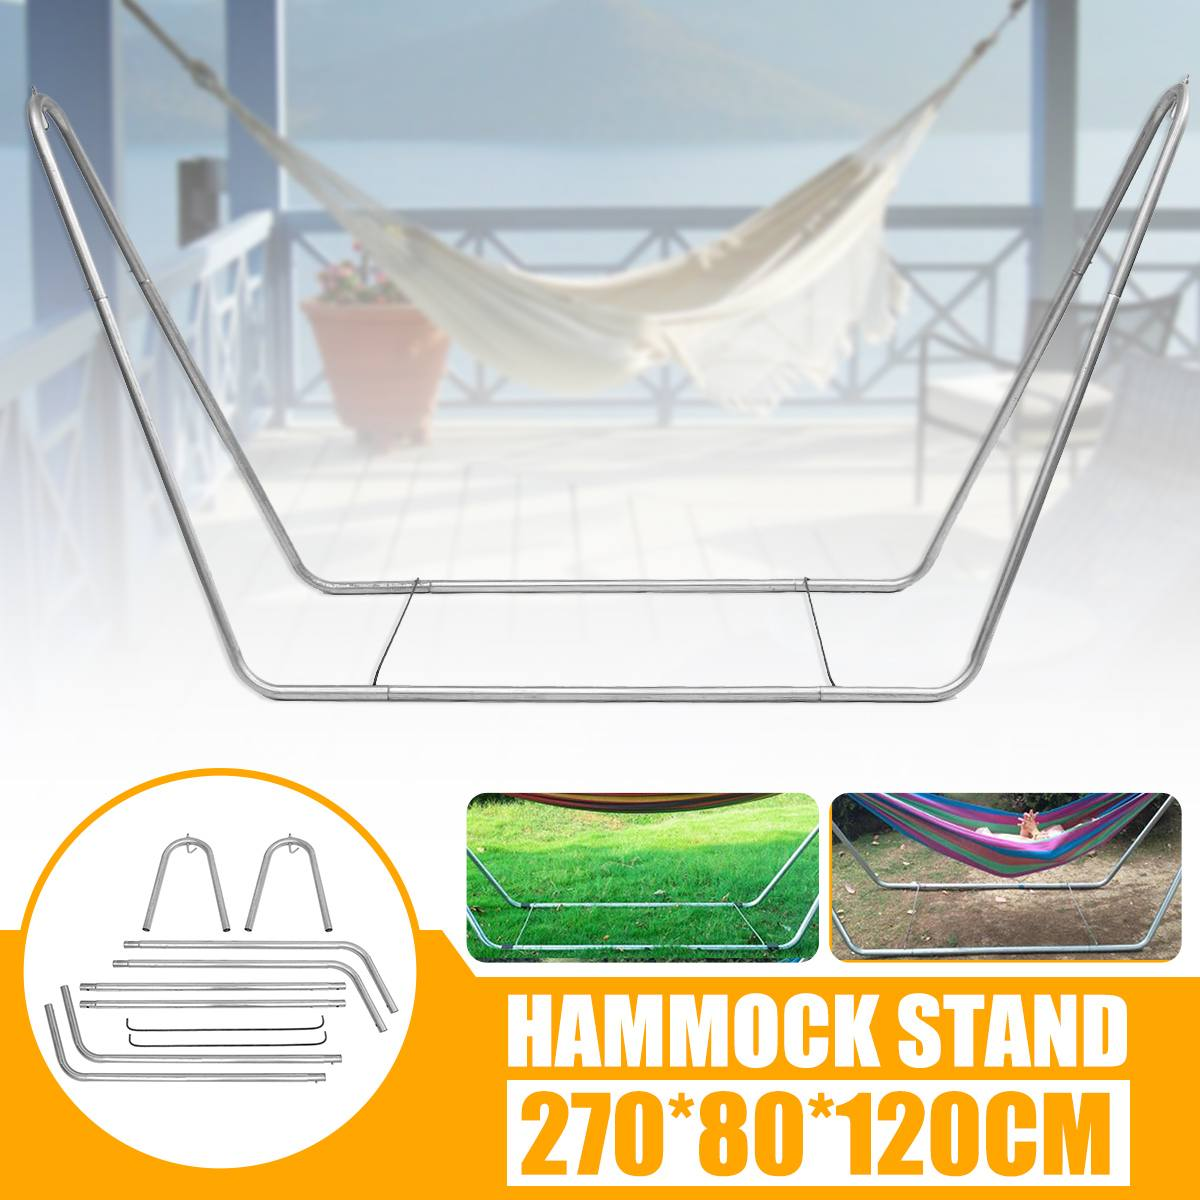 Outdoor Patio Hammock Swing Chair Bed Metal Frame Stand Portable Large Garden Camping Indoor Hammock Stand Only 270*80*120cm